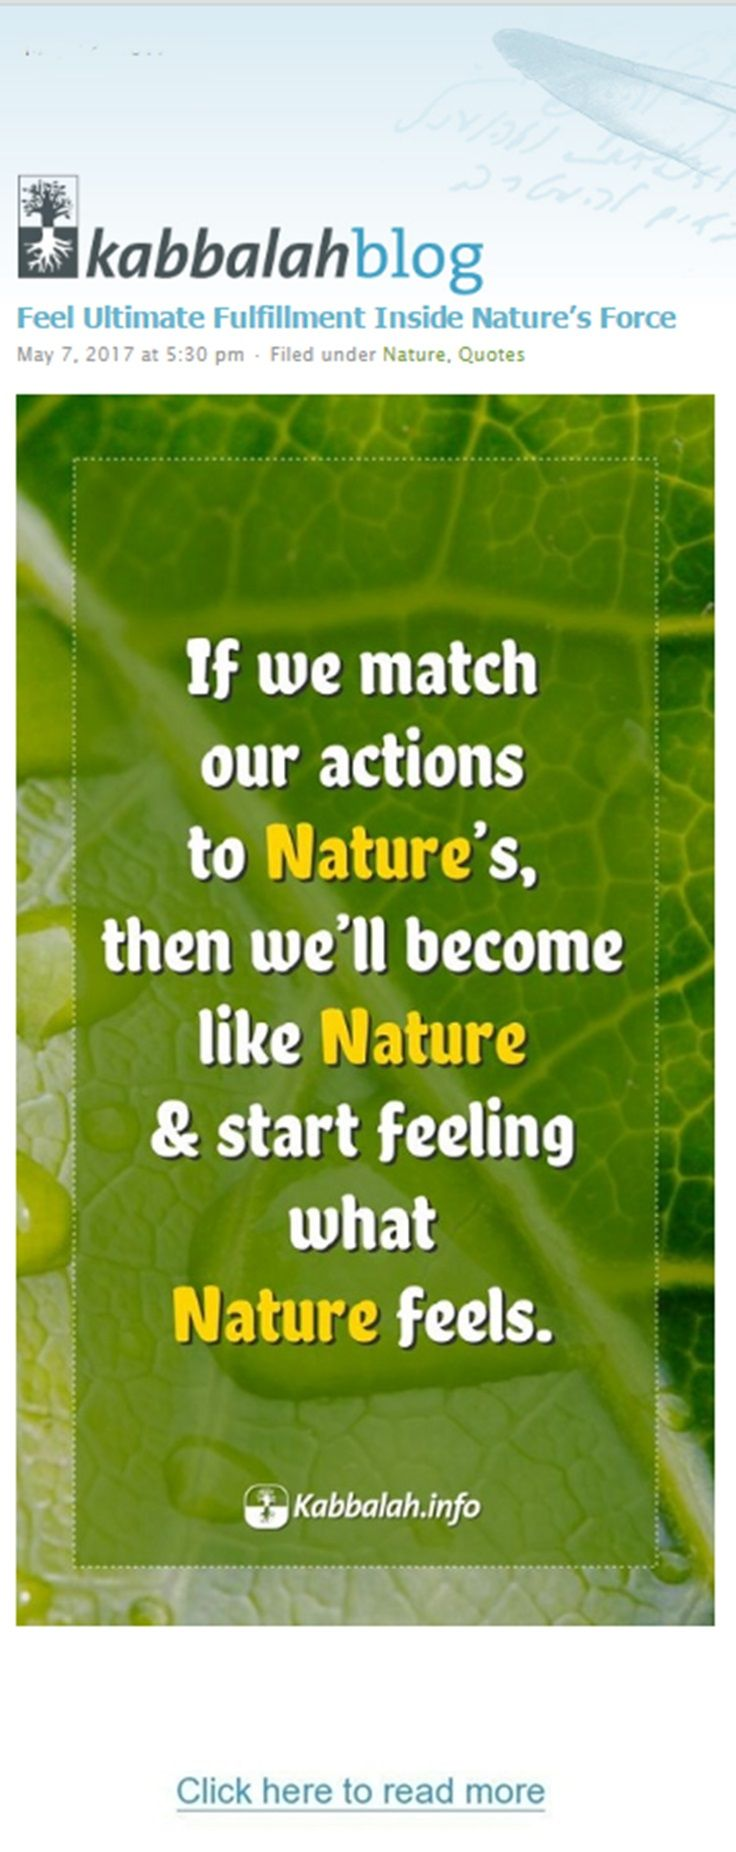 Feel Ultimate Fulfillment Inside Nature's Force If we match our actions to Nature's, then we'll become like Nature & start feeling what Nature feels #quoteskabbalahinfo #quote #kabbalah #nature http://www.kabbalahblog.info/